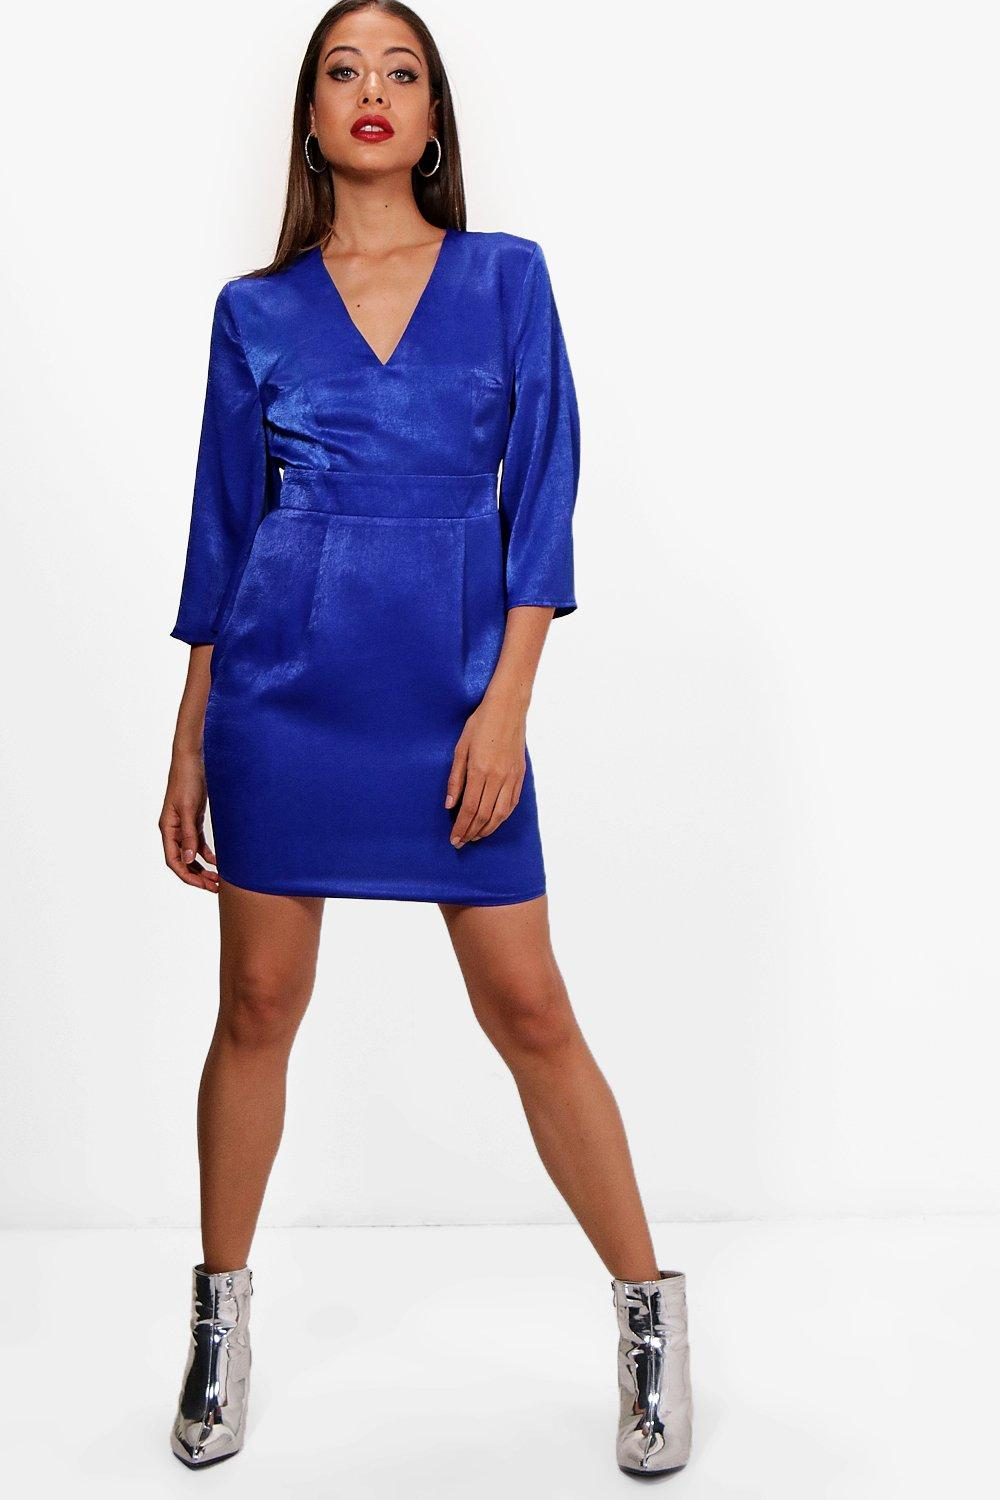 Boohoo-Womens-Wide-Sleeve-Satin-Tie-Detail-Shift-Dress